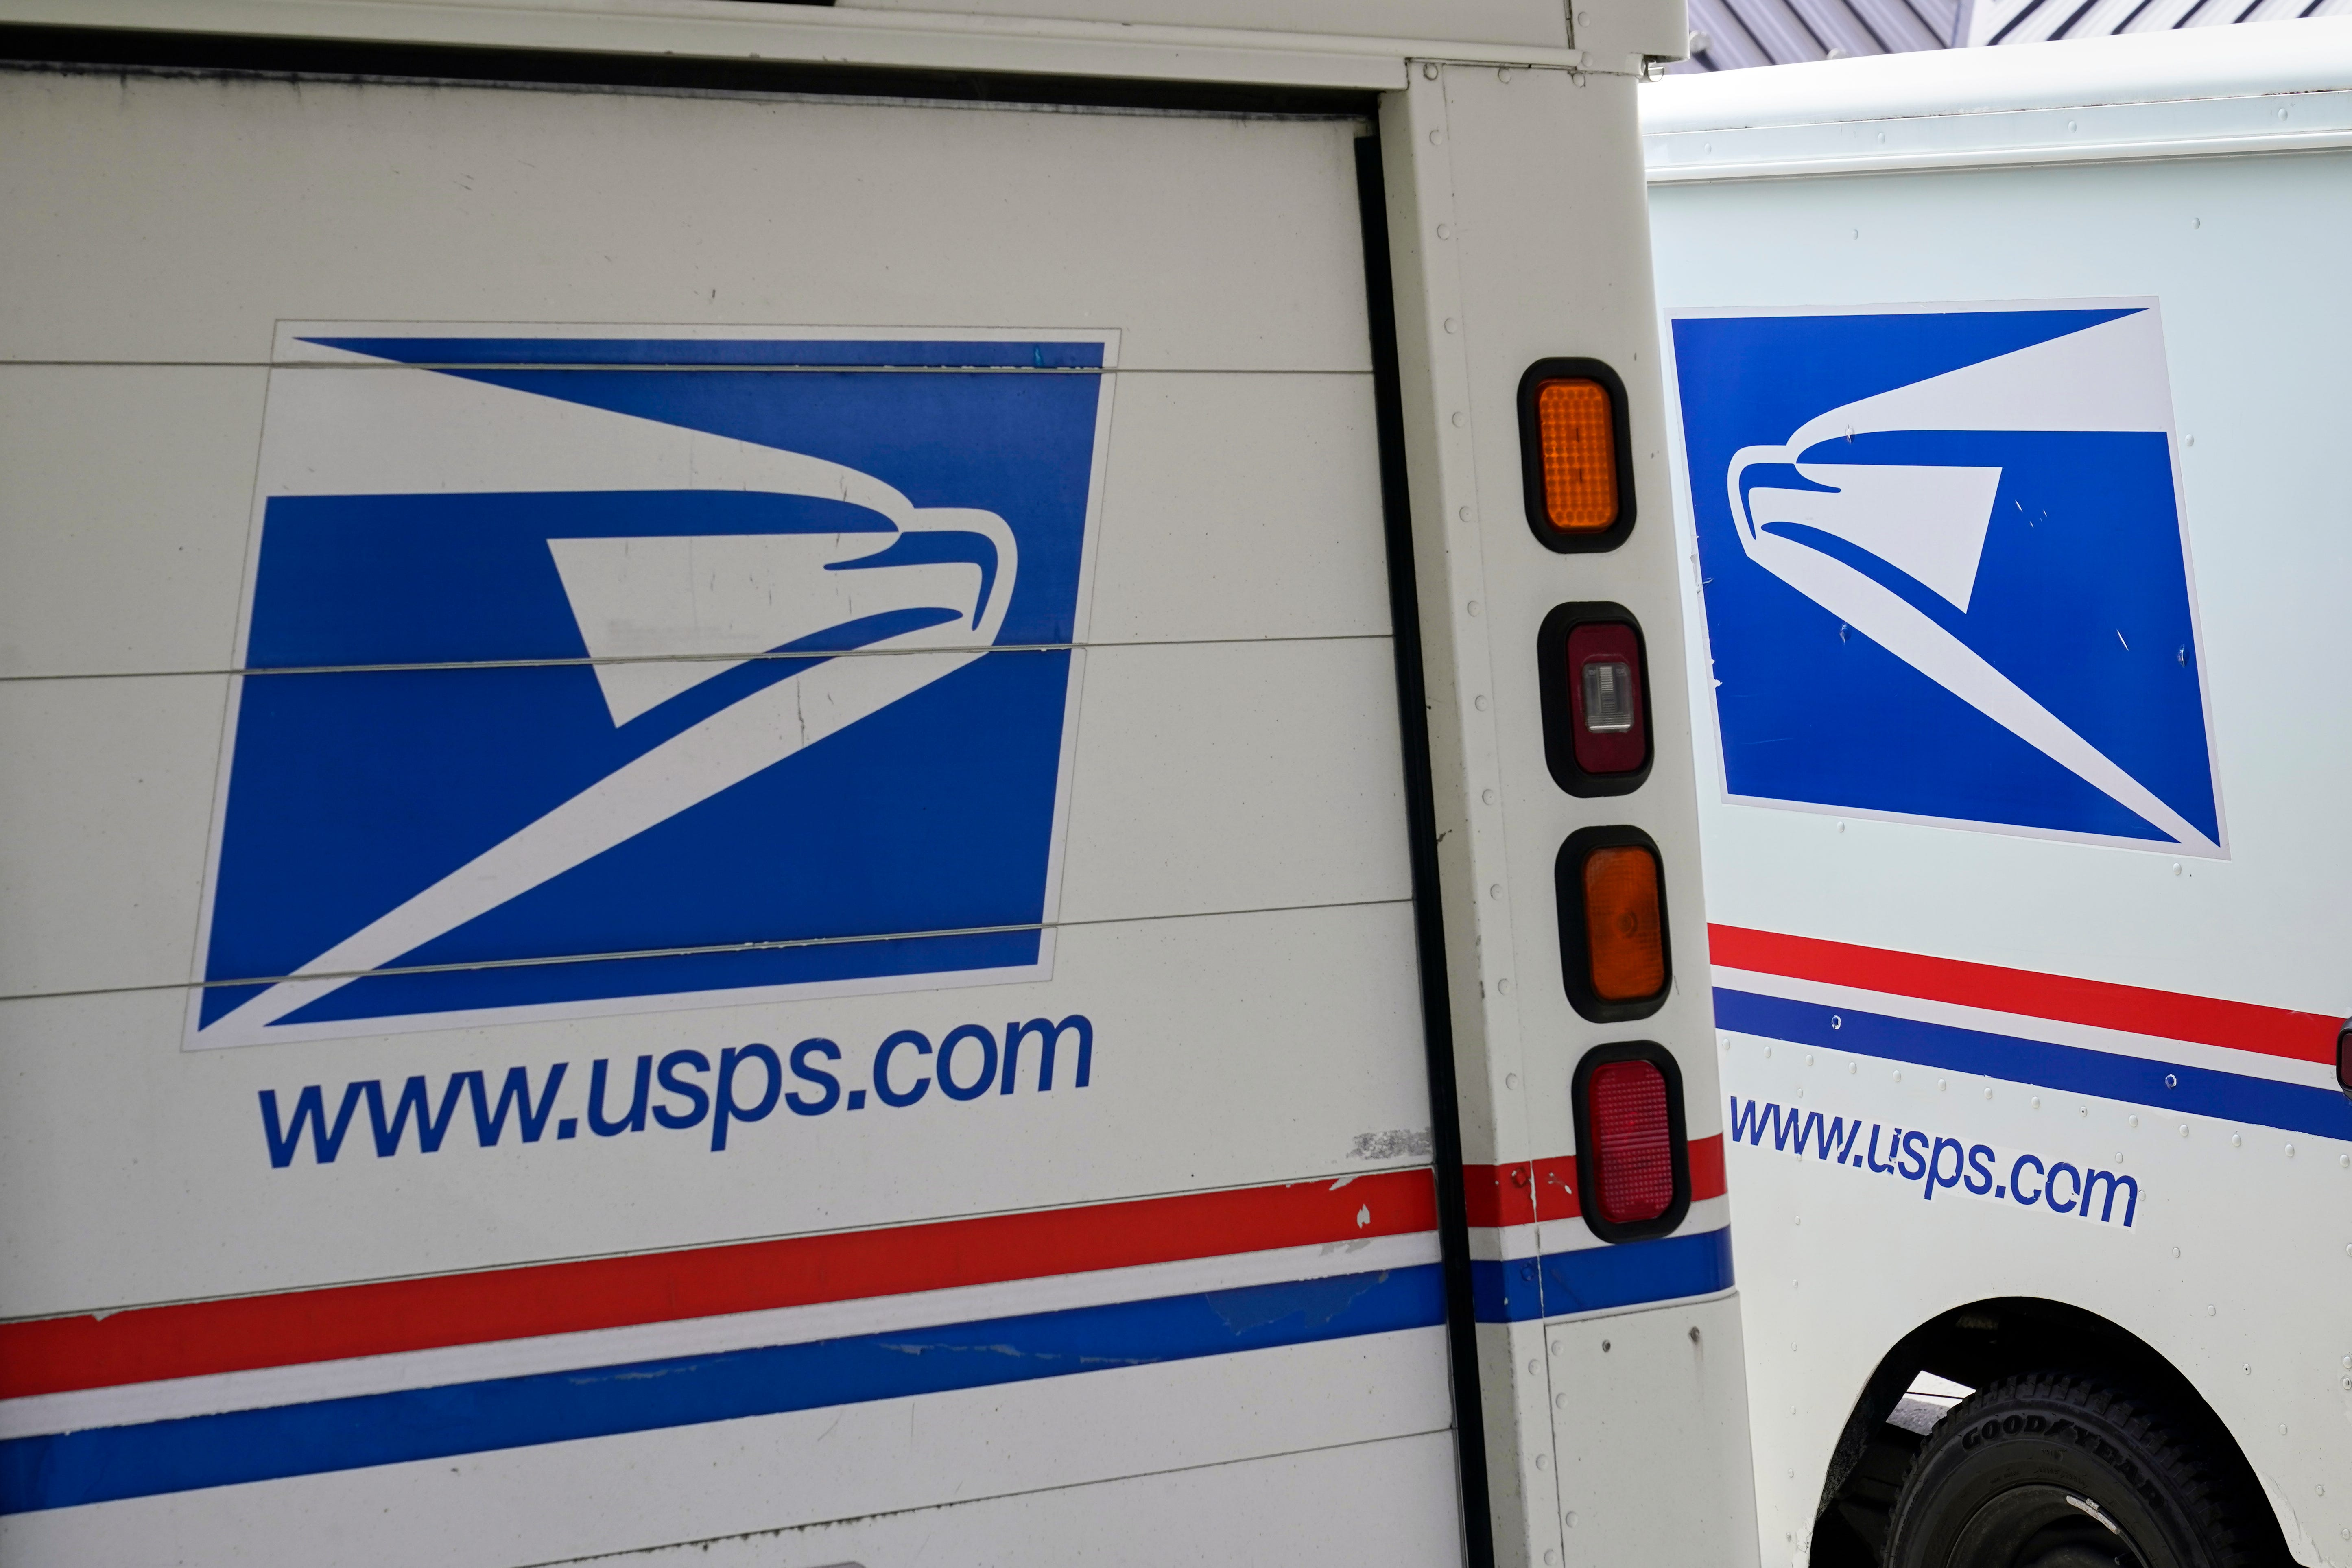 USPS selects Oshkosh Defense to build greener mail truck 2